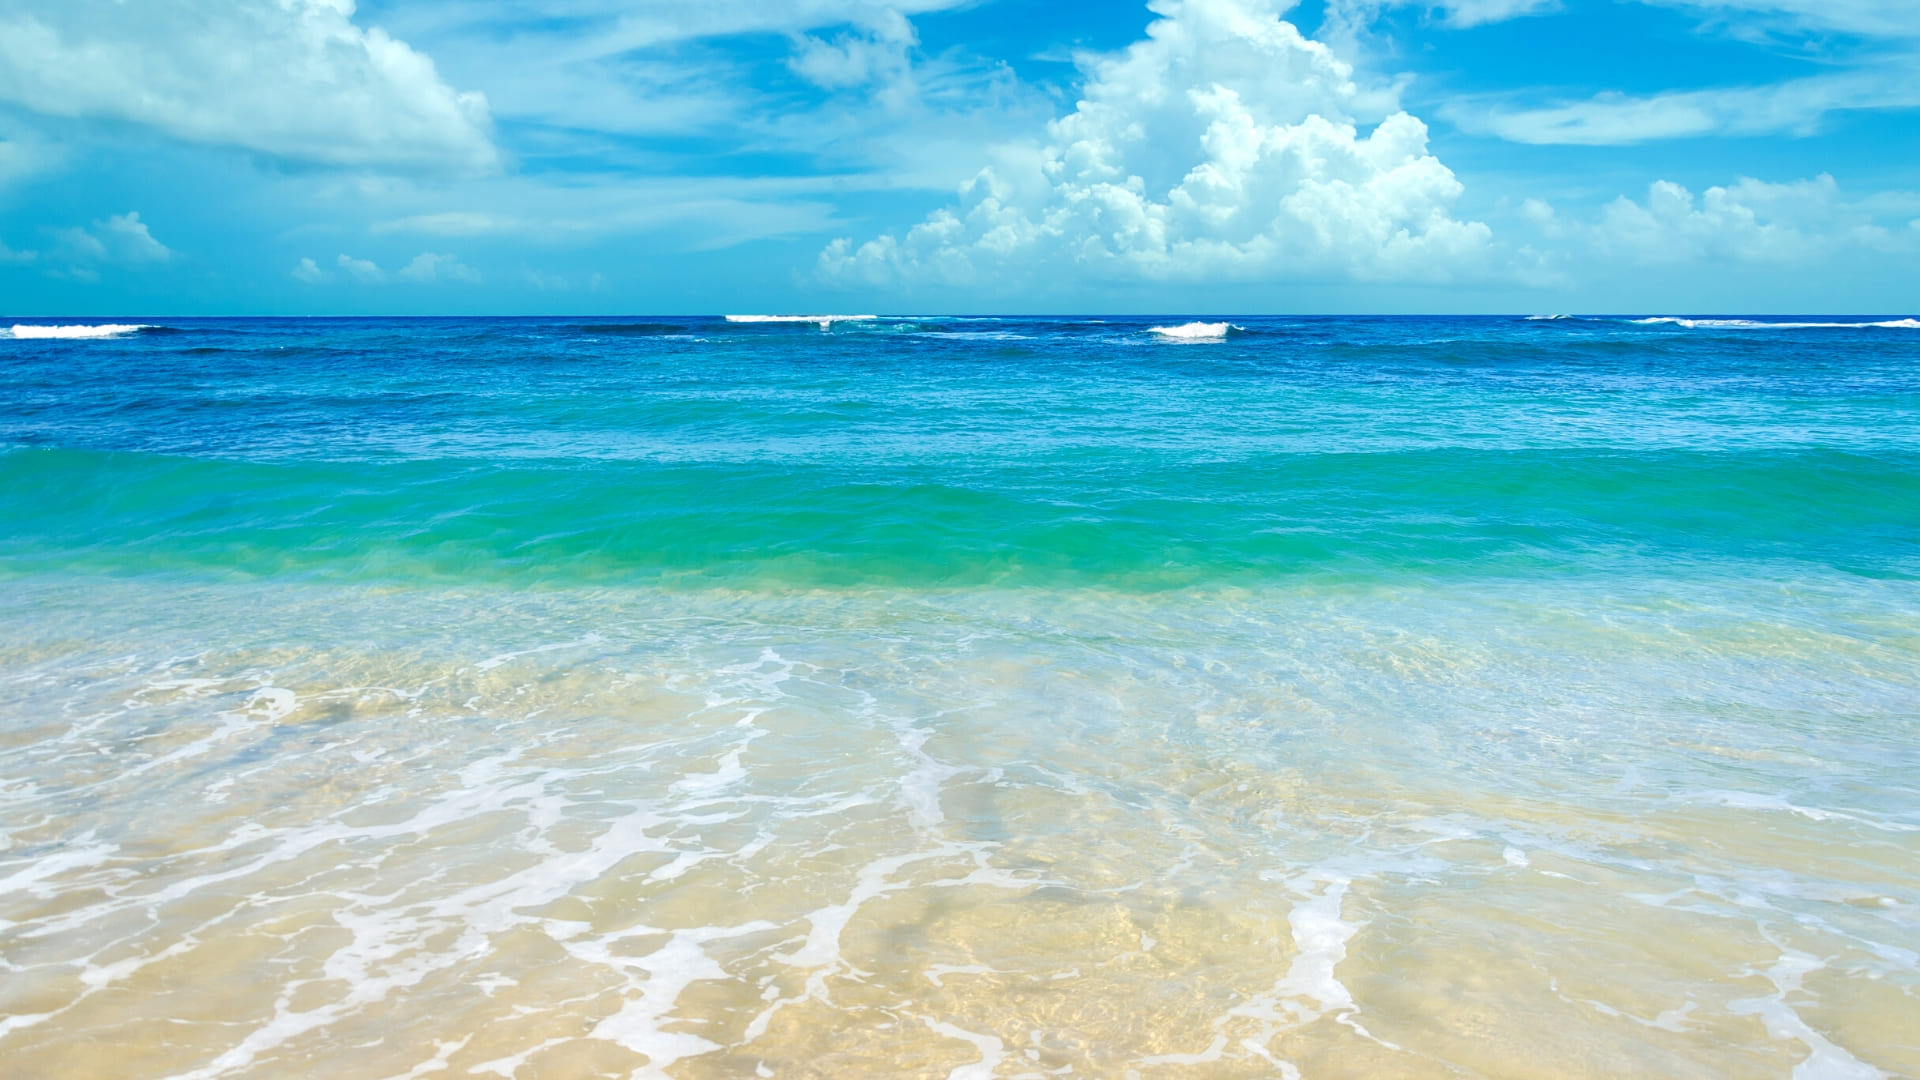 Free background images beach